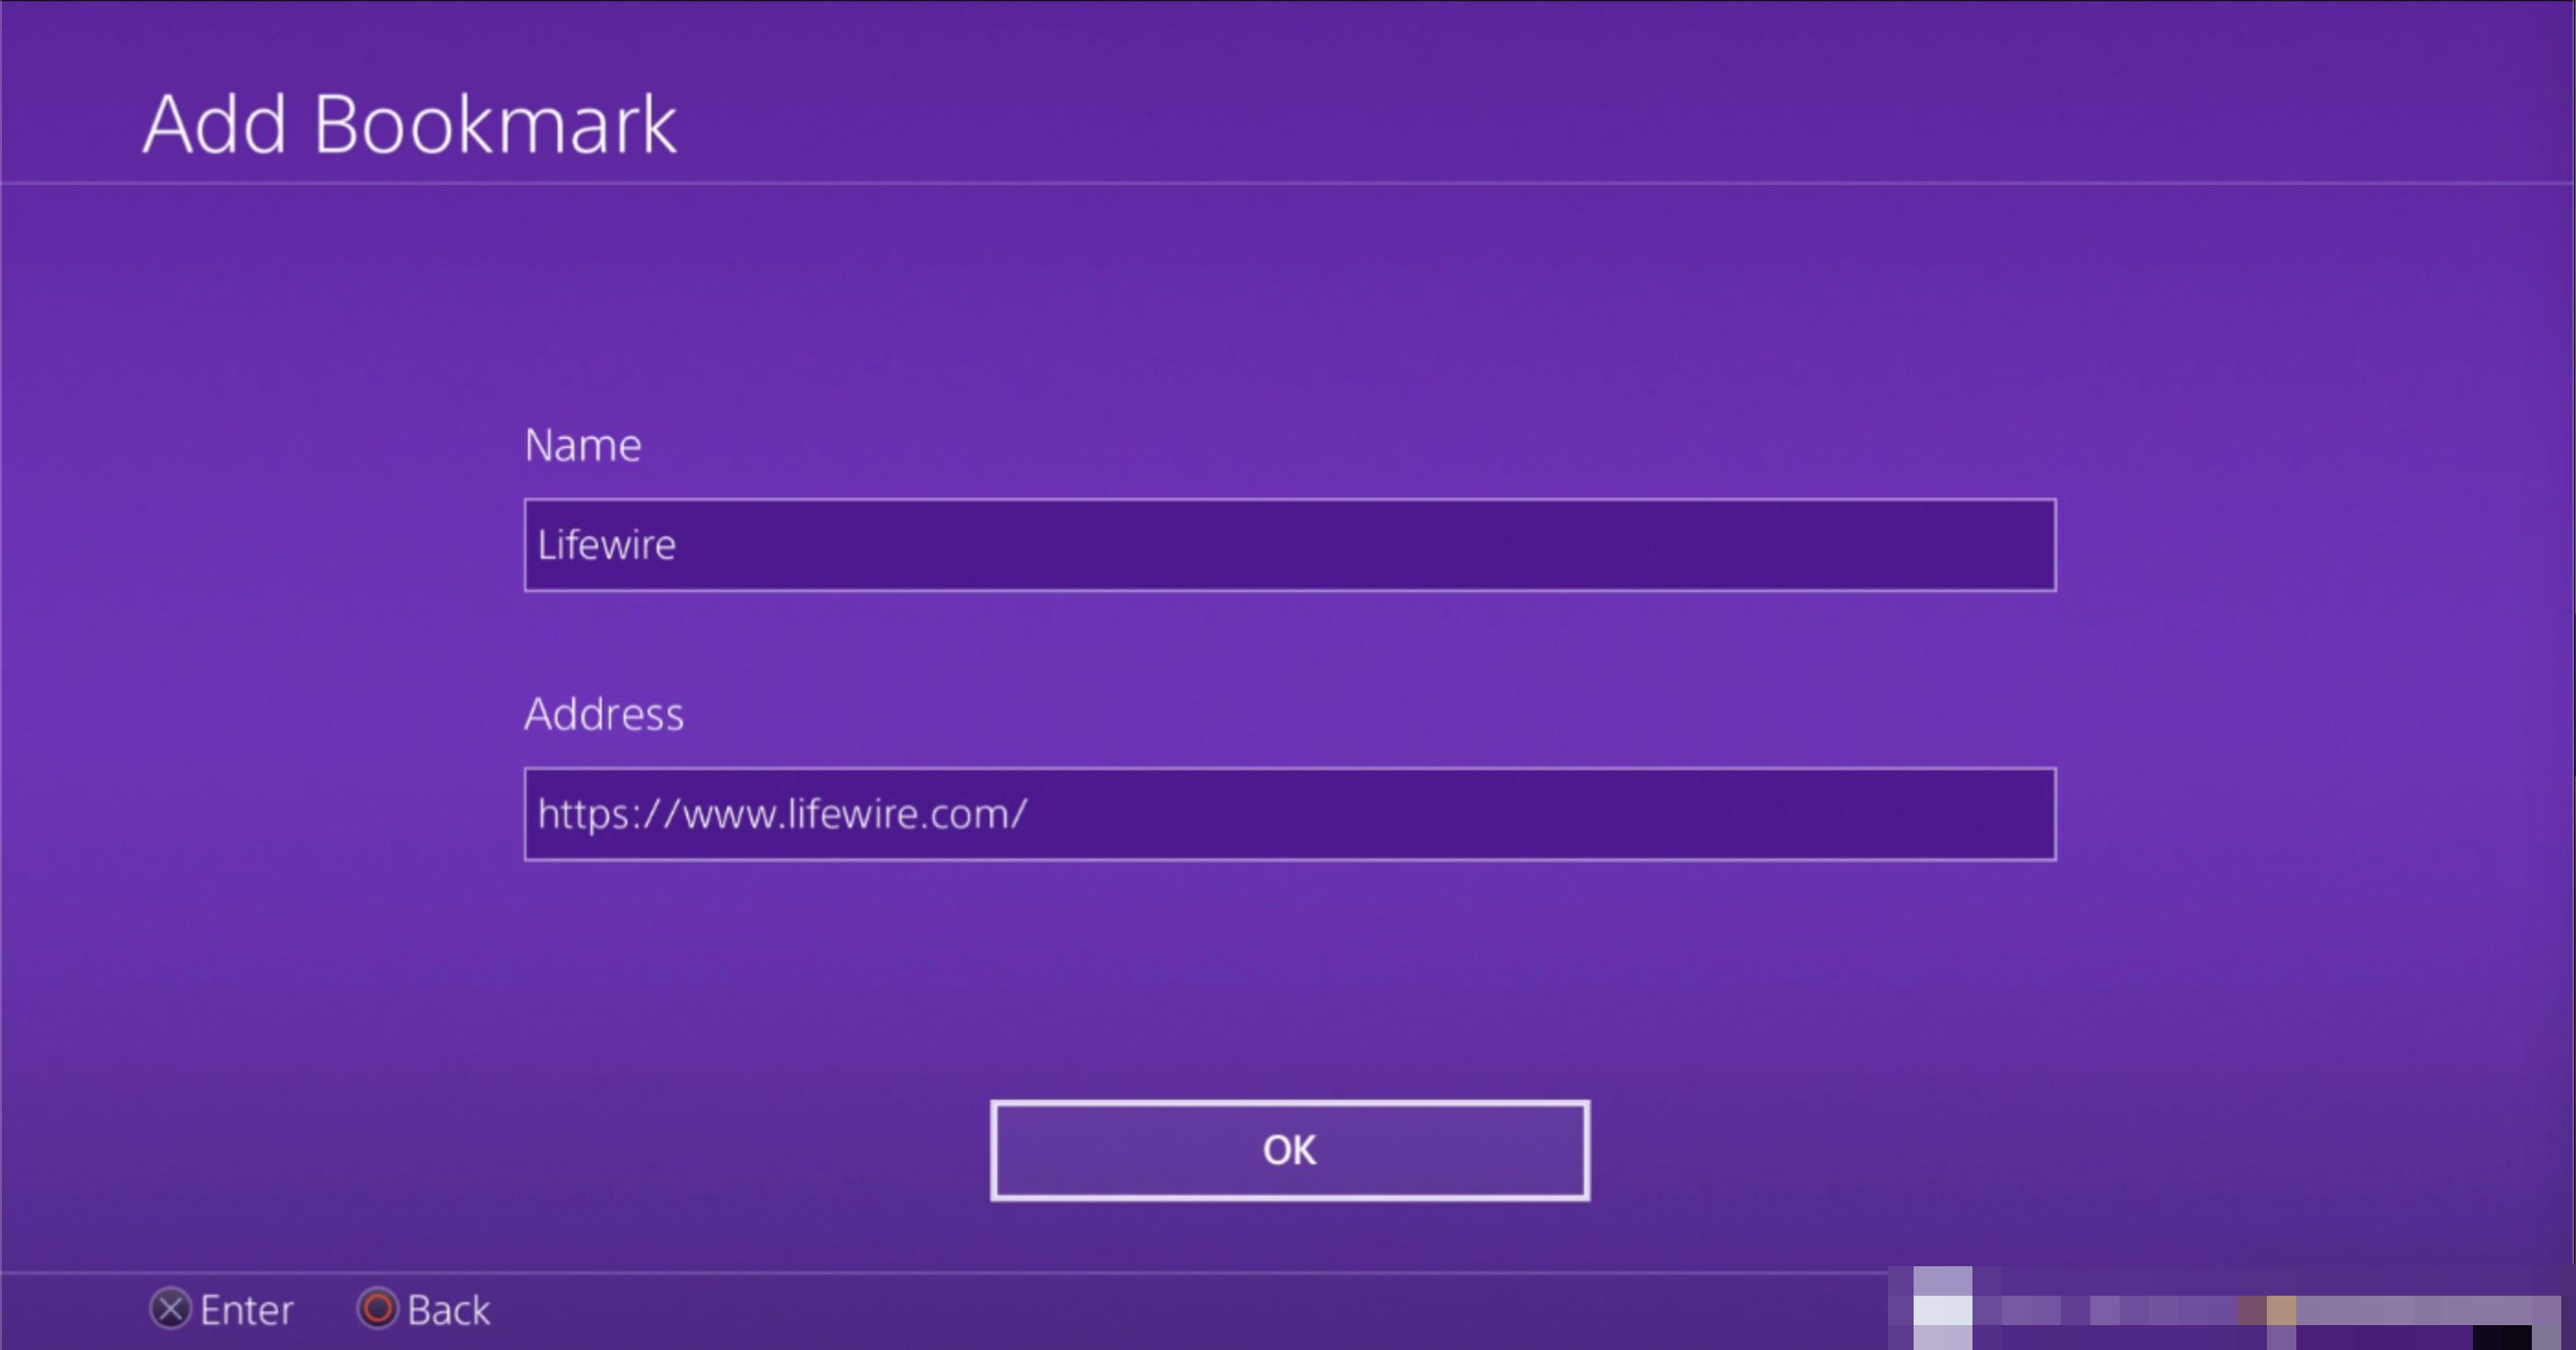 Add Bookmark screen on PS4 web browser